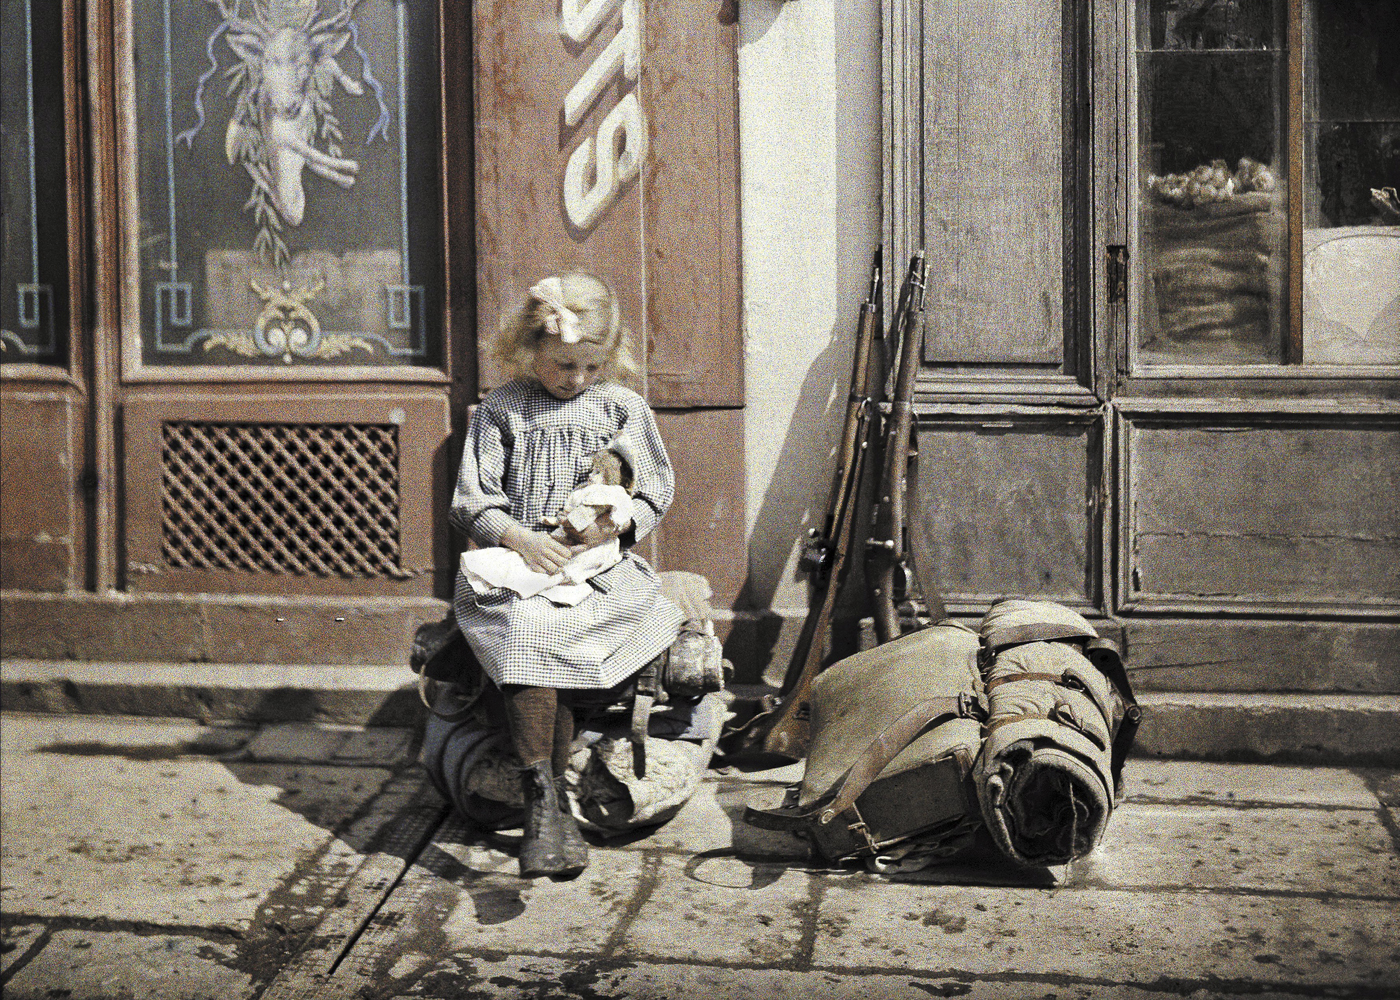 A little girl plays with her doll in Reims, France in 1917. Two guns and a knapsack are next to her on the ground.